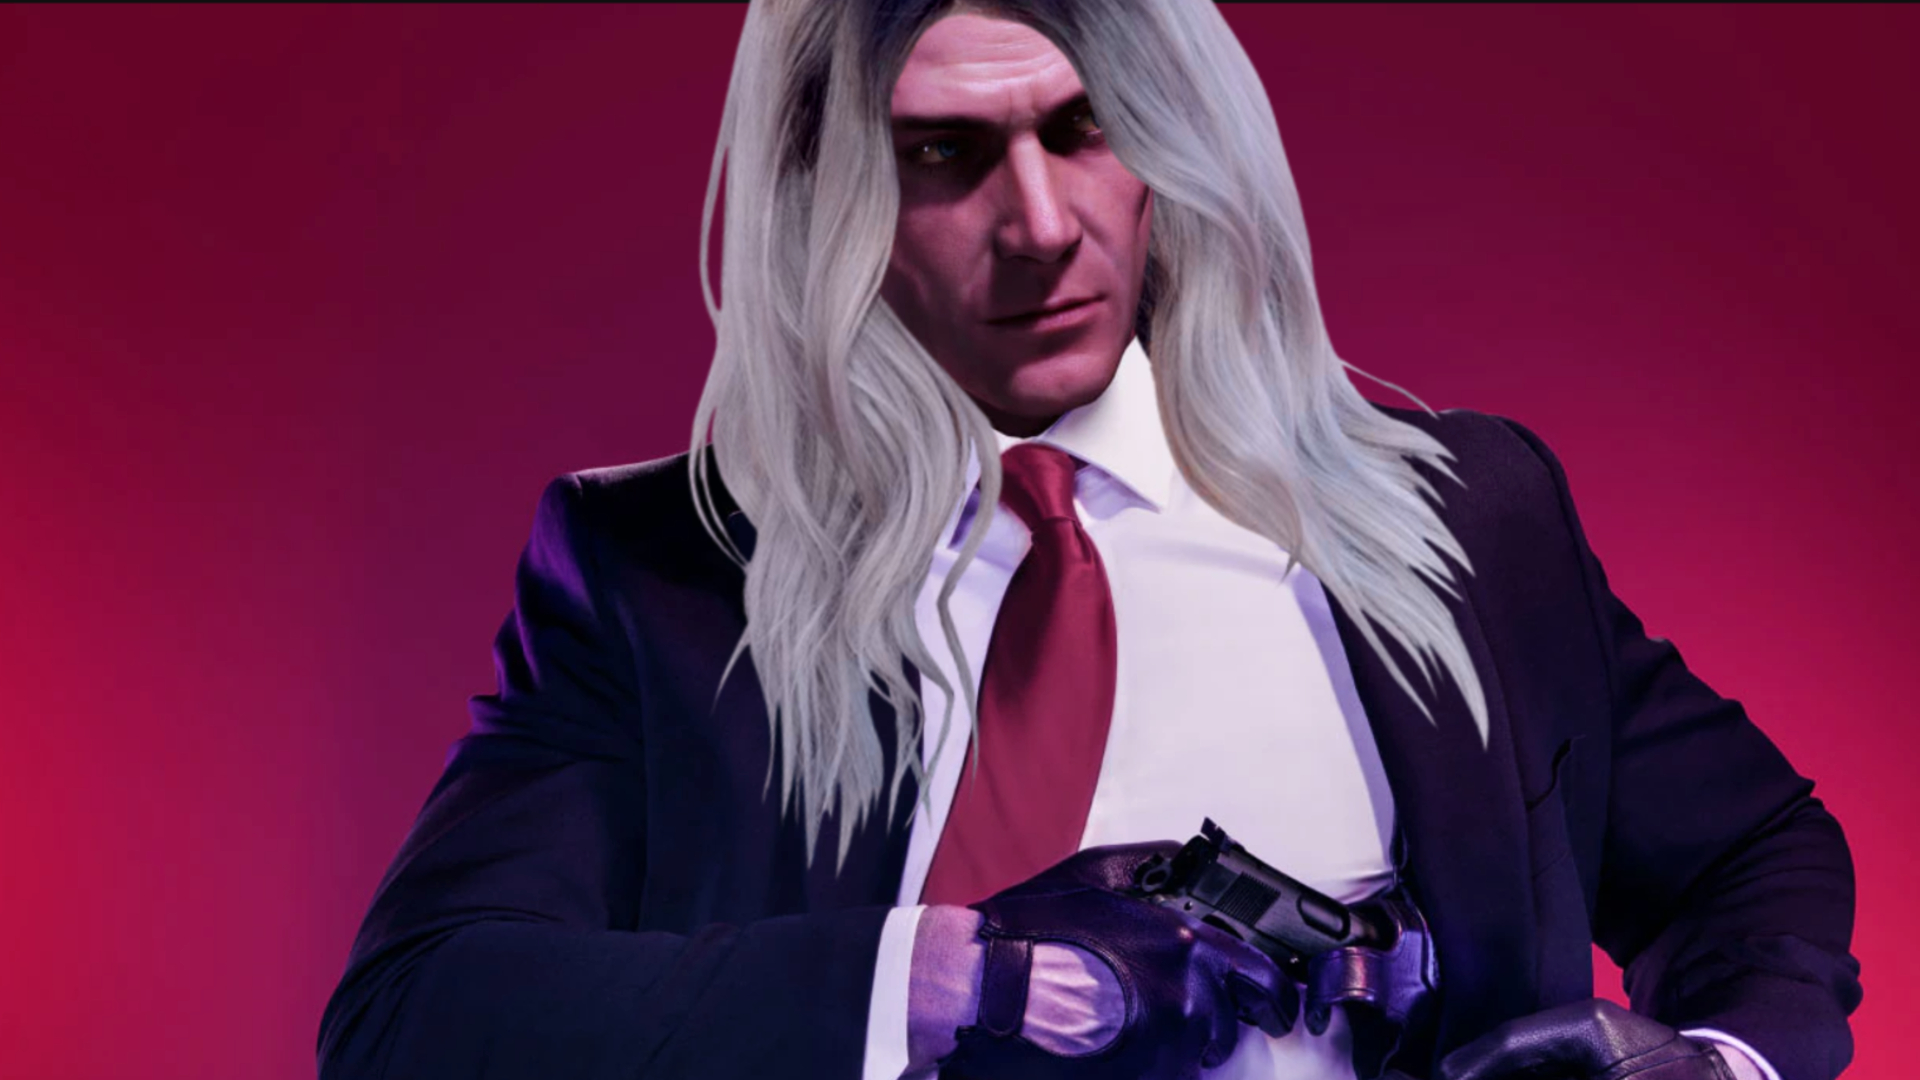 Agent 47 could be getting some luscious locks in the Hitman TV show